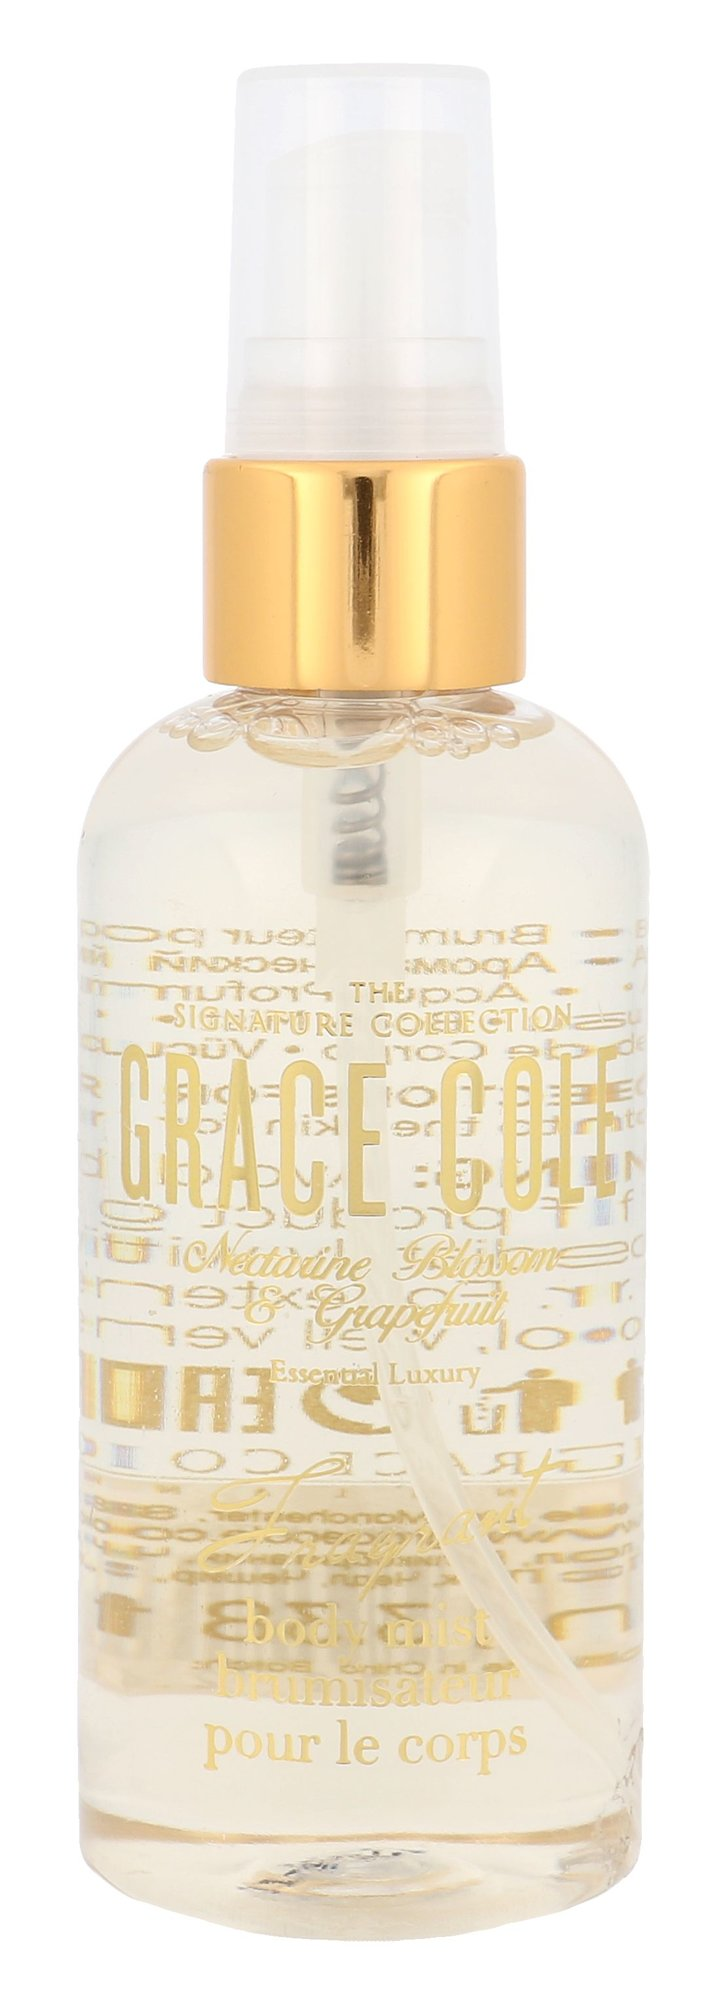 Grace Cole Nectarine Blossom & Grapefruit Nourishing body spray 100ml